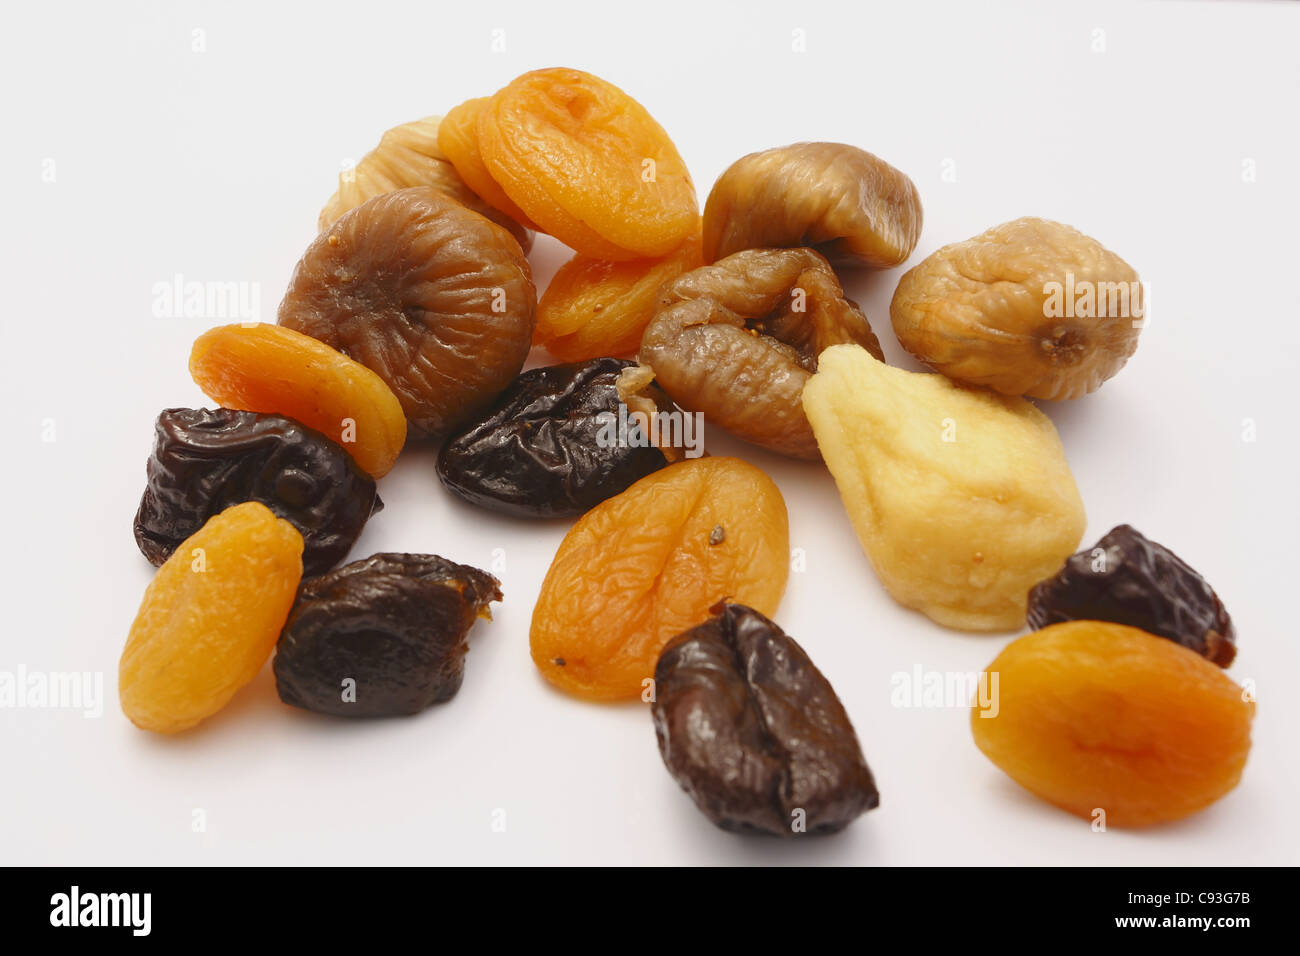 dry fruits on the white background - Stock Image